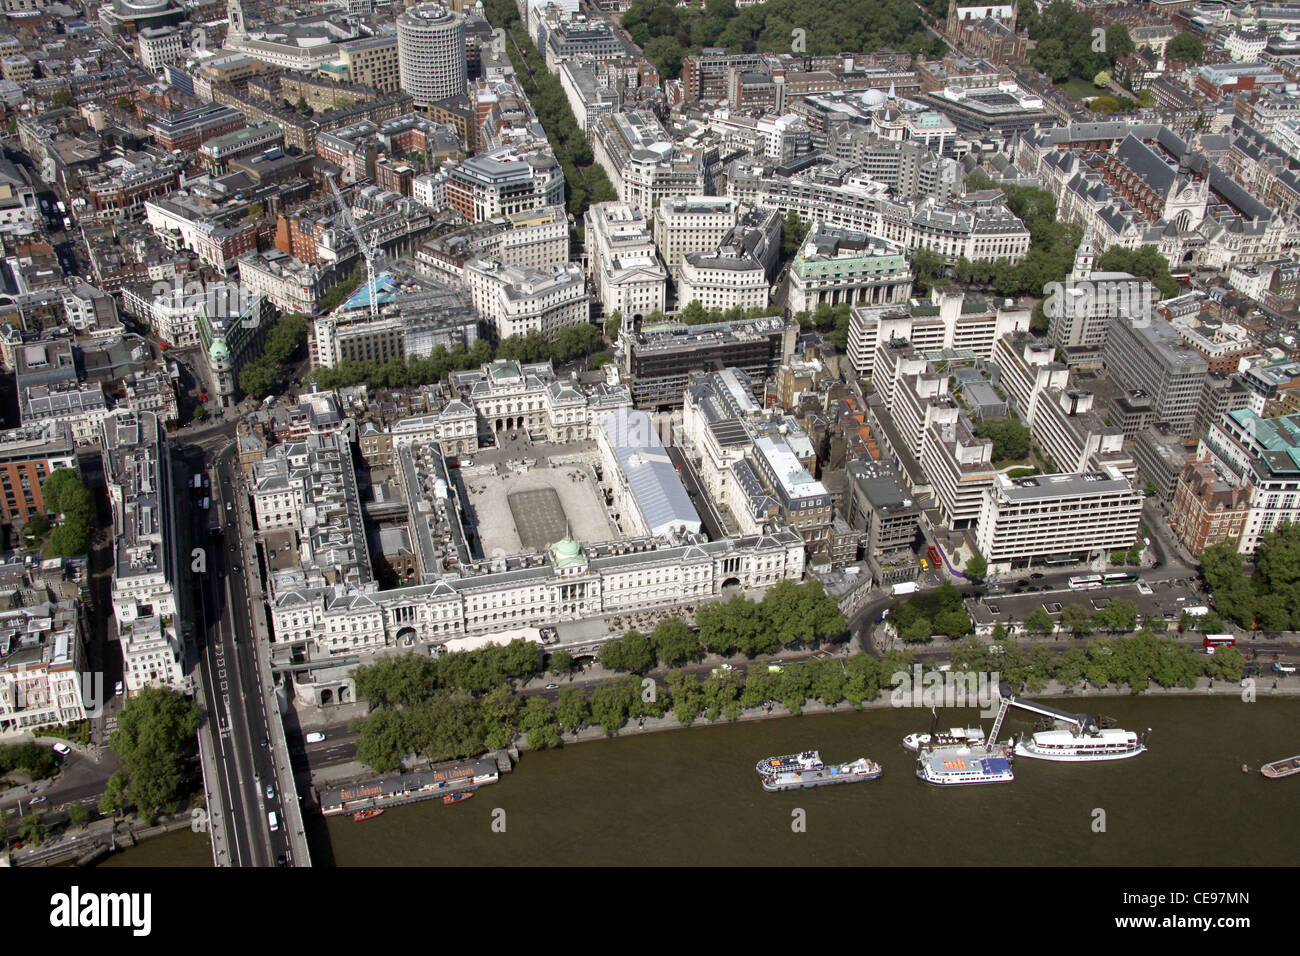 Aerial Image Of Somerset House On Victoria Embankment London Wc2